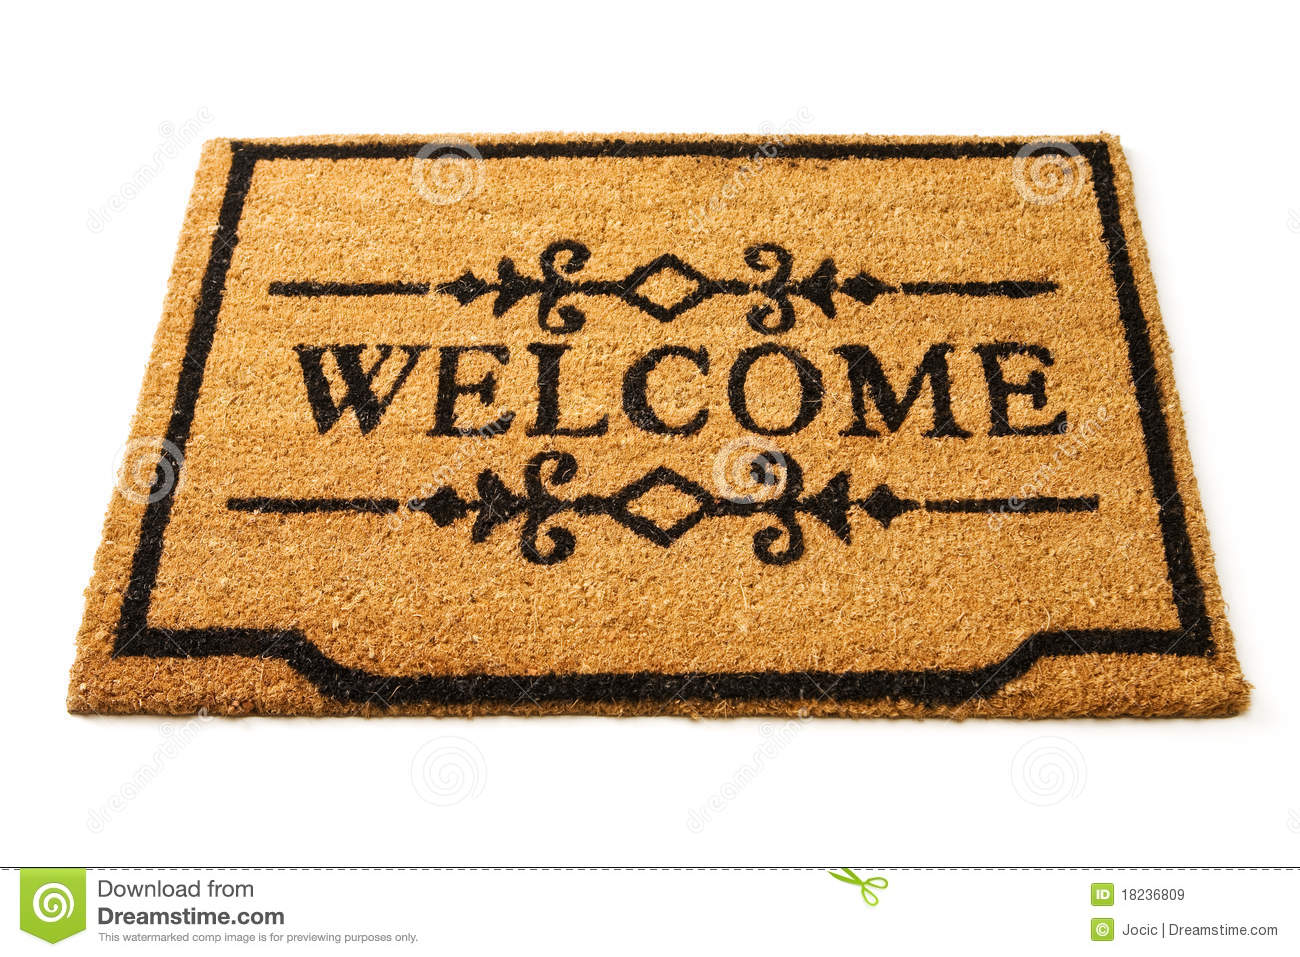 welcome mat royalty free stock images image 18236809 free shamrock clip art downloads free shamrock clip art downloads